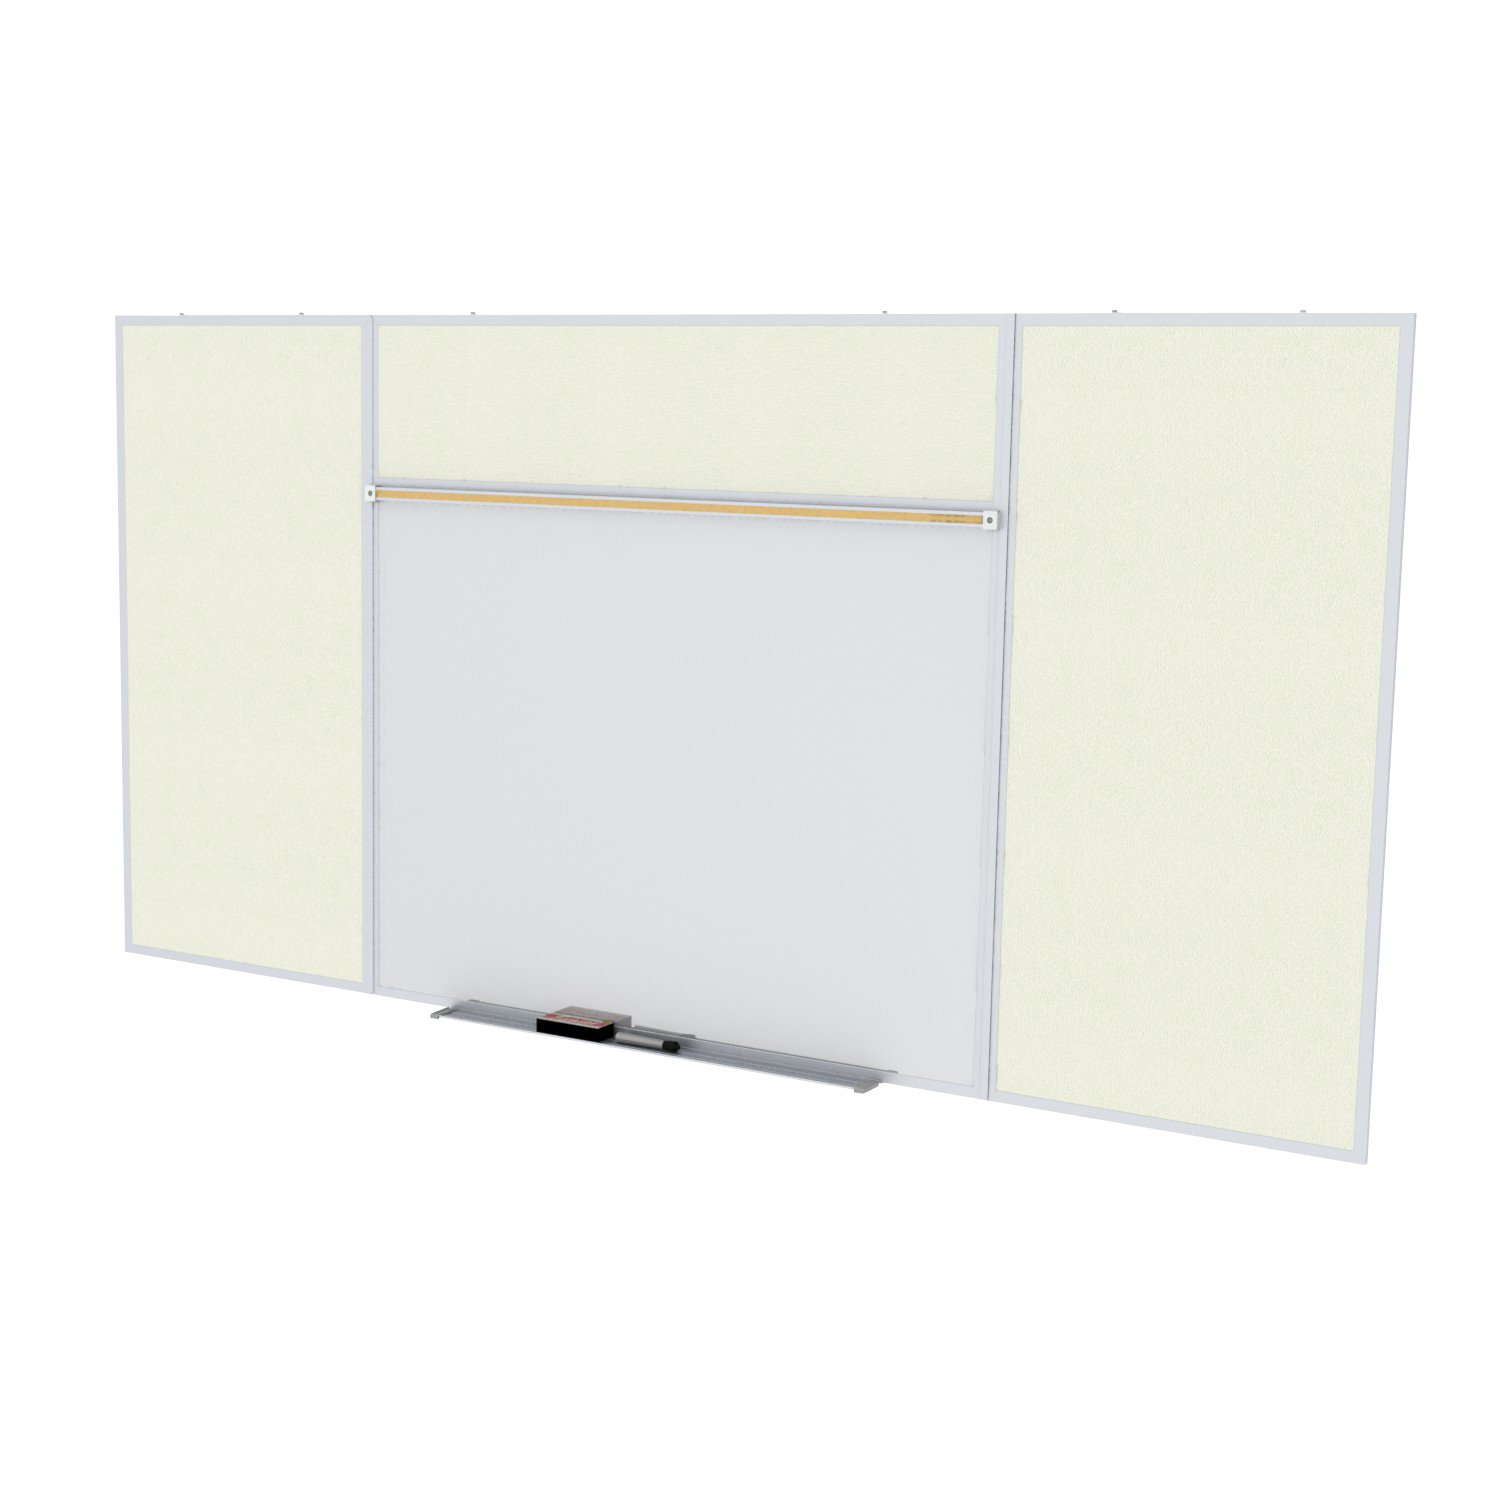 Ghent Style E 4 x 16 Feet Combination Board, Porcelain Magnetic Whiteboard and Vinyl Fabric Bulletin Board, Ivory , Made in the USA